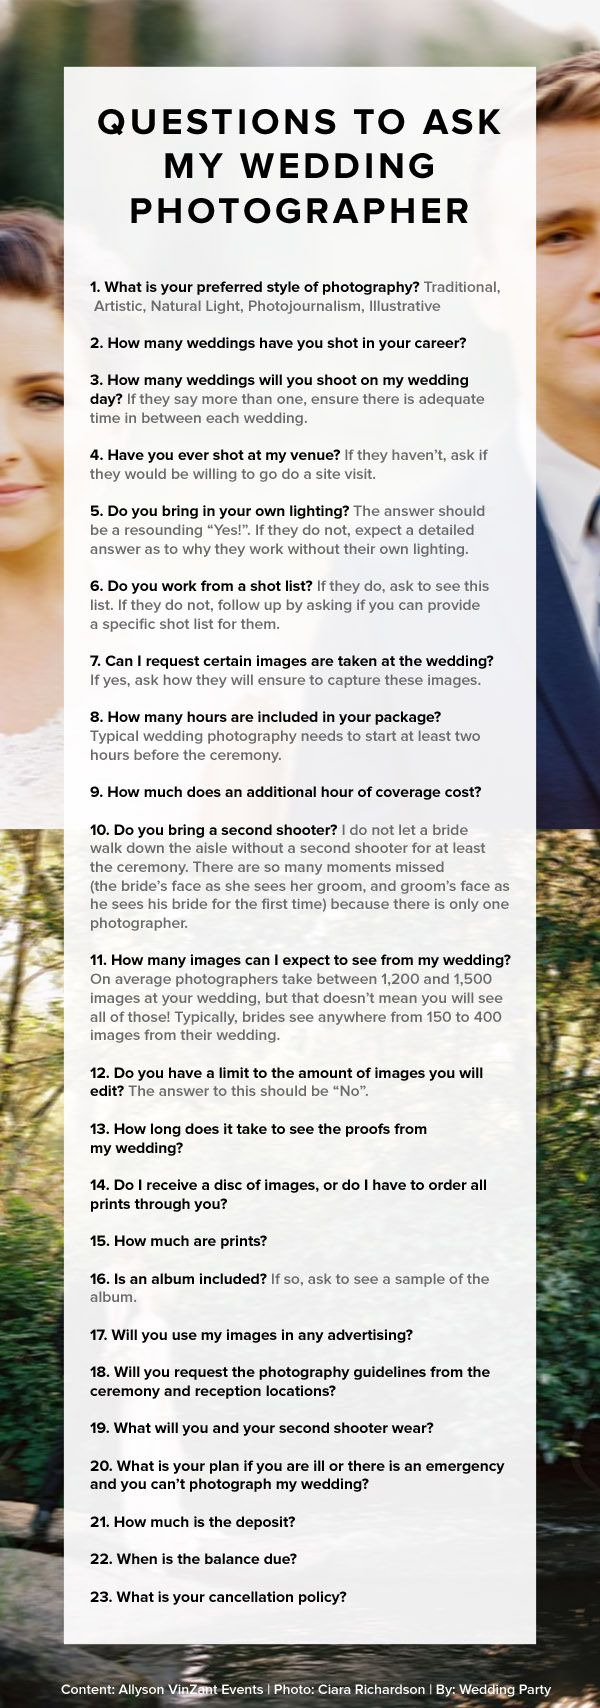 Questions to Ask My Wedding Photographer: An Infographic